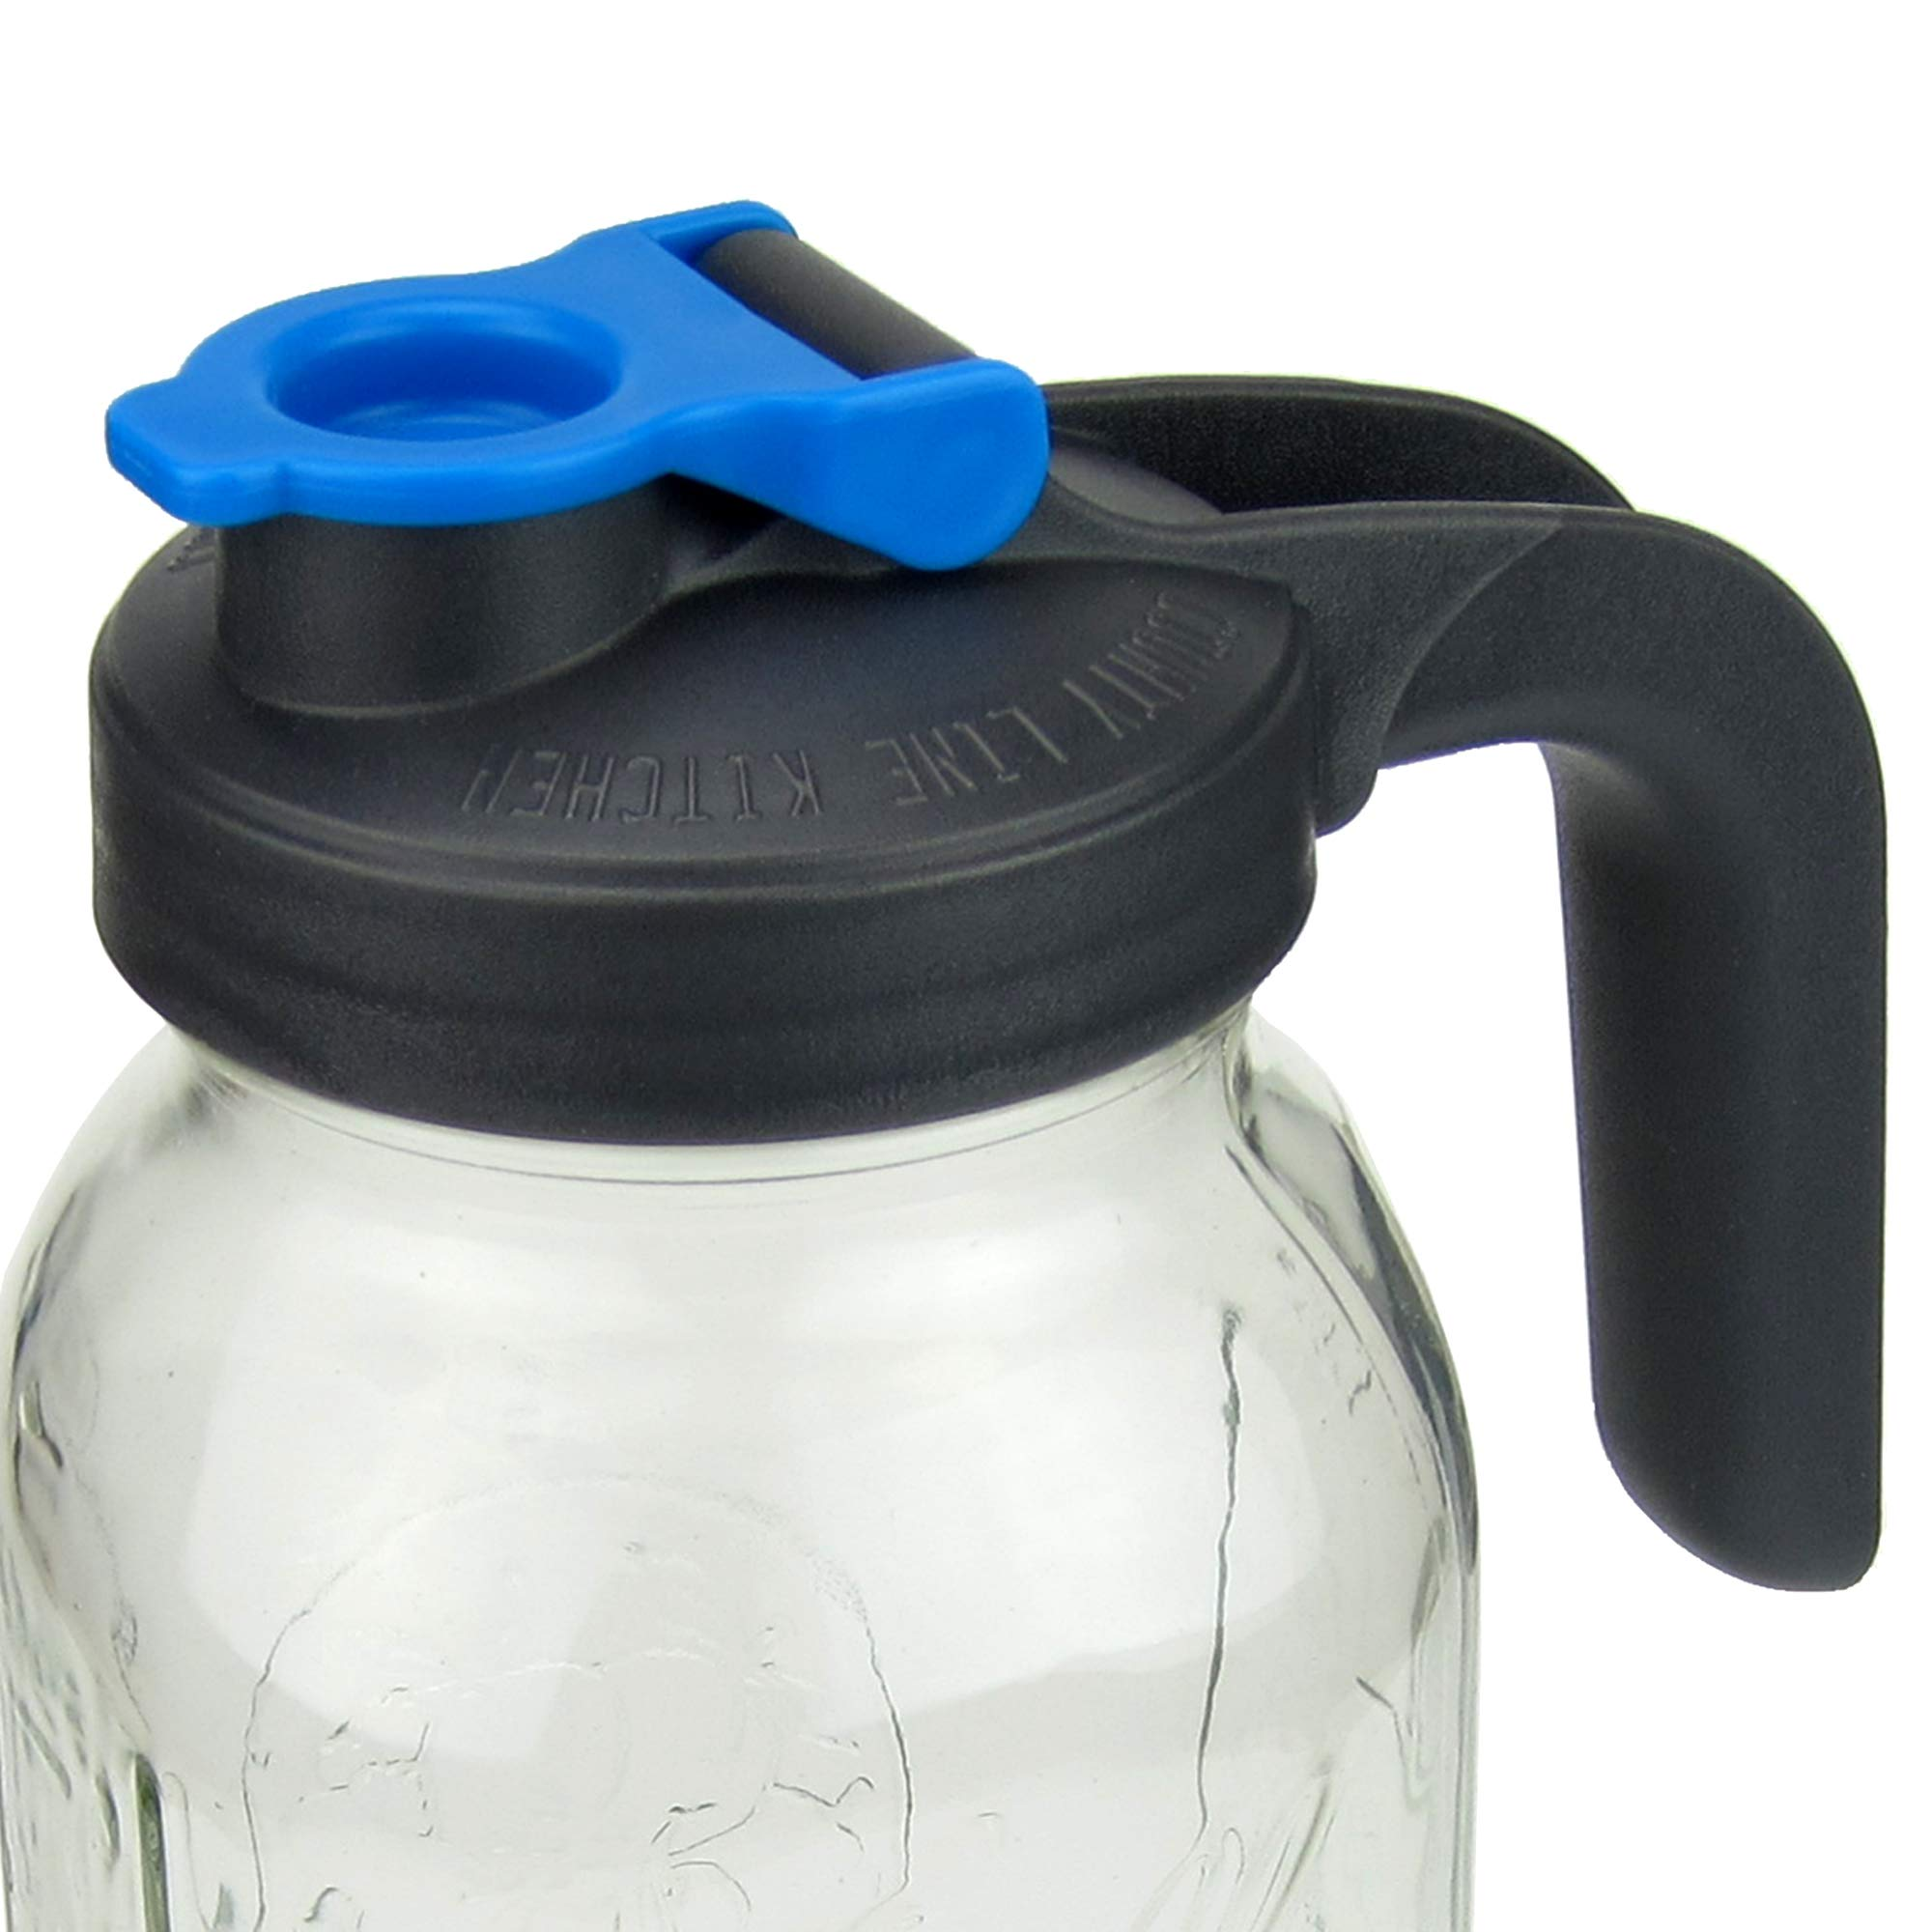 Pour and Store! Wide Mouth Mason Jar Flip Cap Lid With Handle by County Line Kitchen with Airtight, Leak-Proof Seal and Innovative Flip Cap (WIDE MOUTH, HANDLE, Blue, 1 Pack) by County Line Kitchen